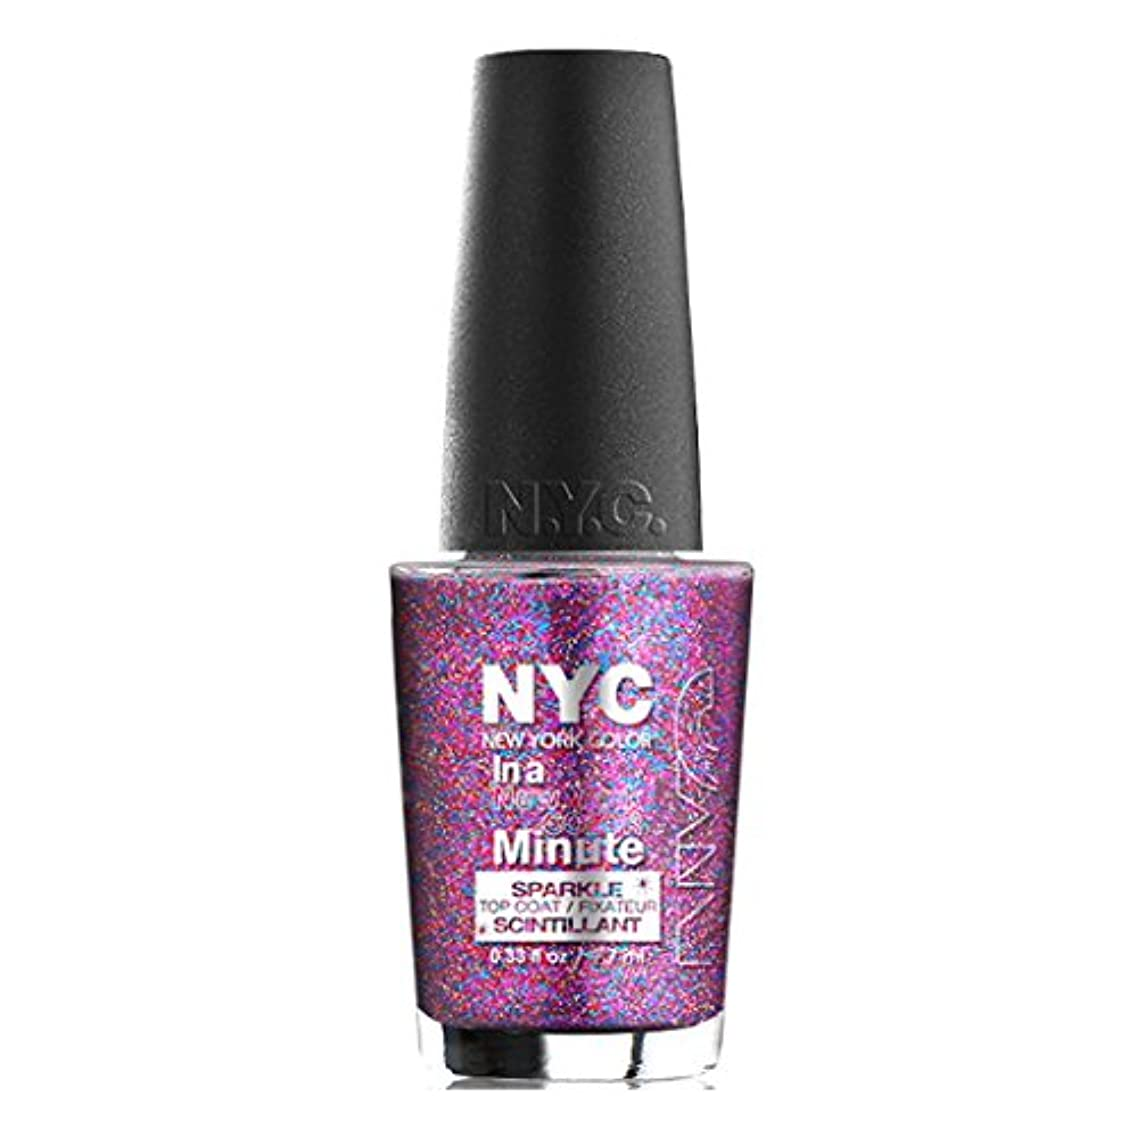 アプローチヘルパー完全に乾く(3 Pack) NYC In A New York Color Minute Sparkle Top Coat - Big City Dazzle (並行輸入品)